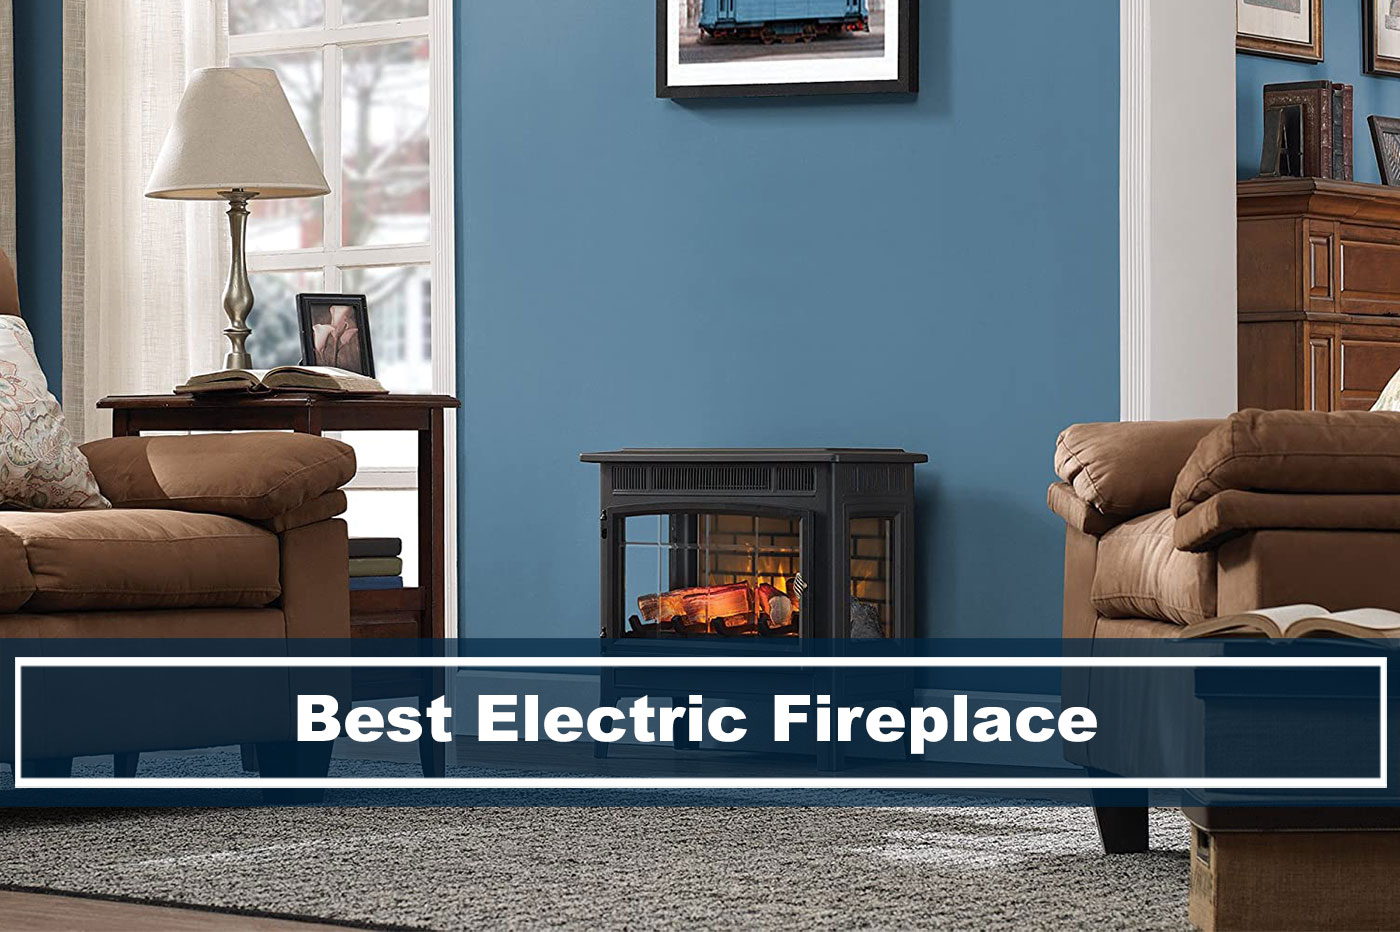 best electric fireplace for the house